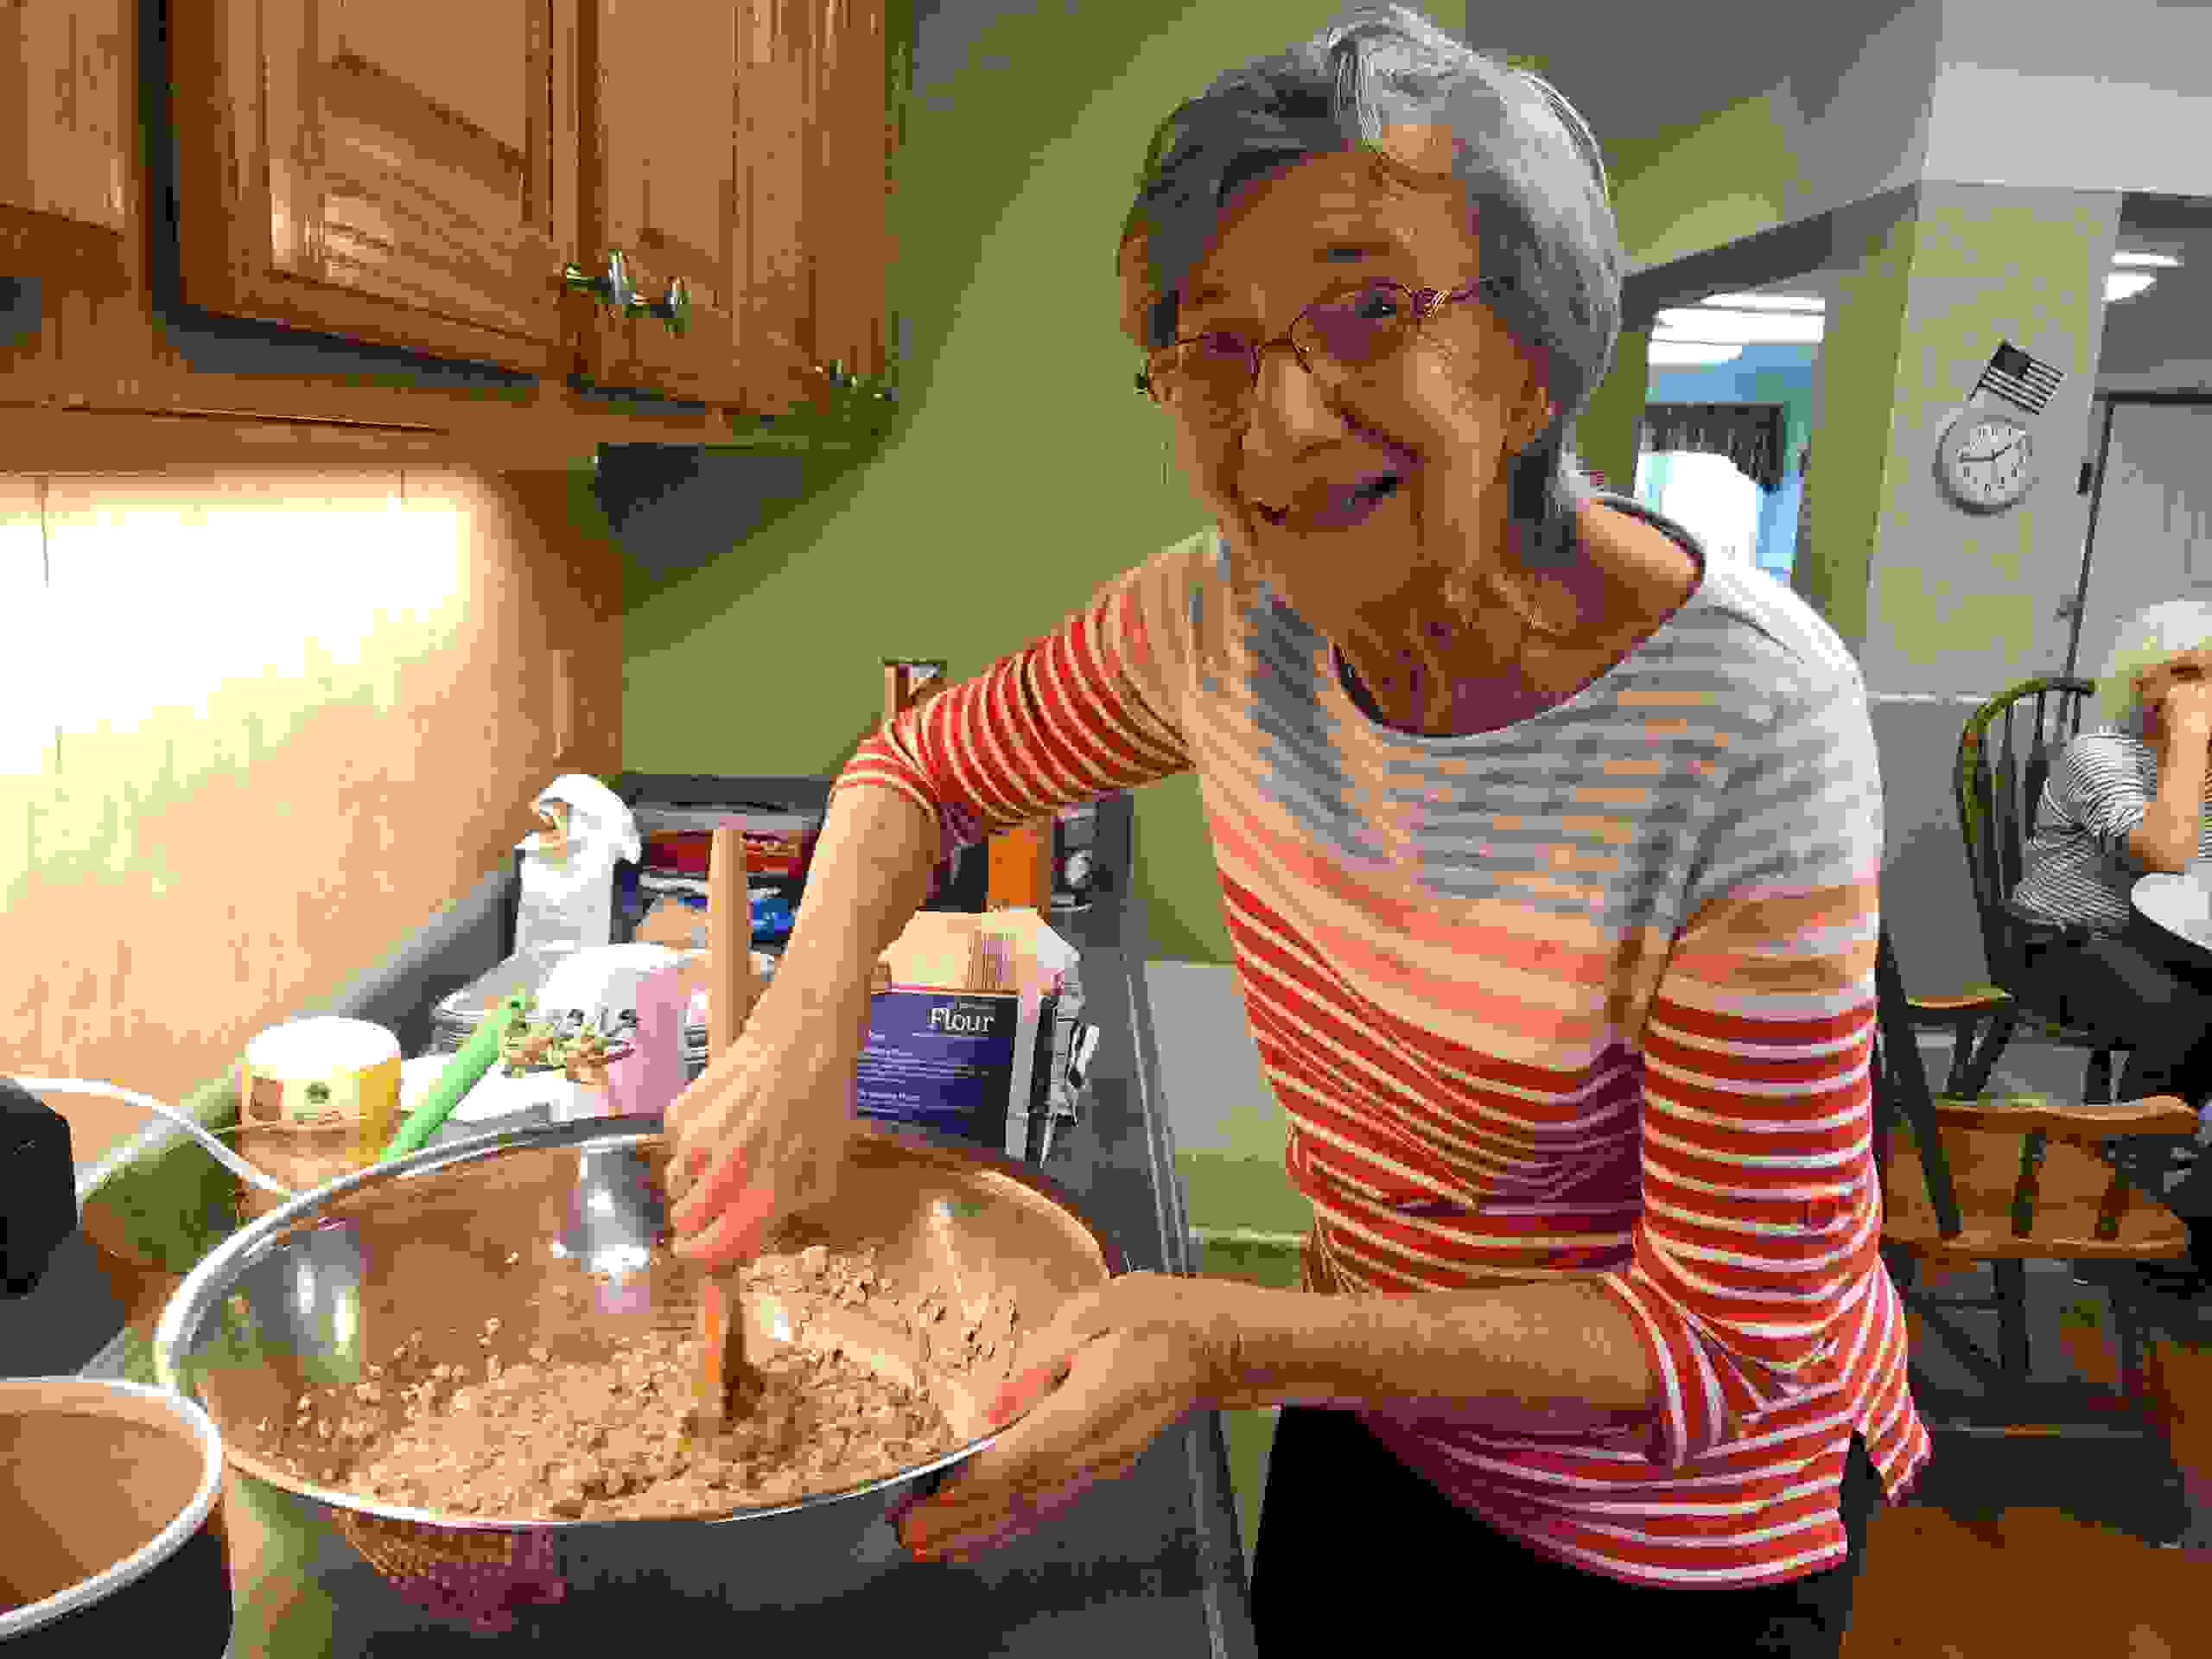 Resident mixing cookie dough during baking activity!